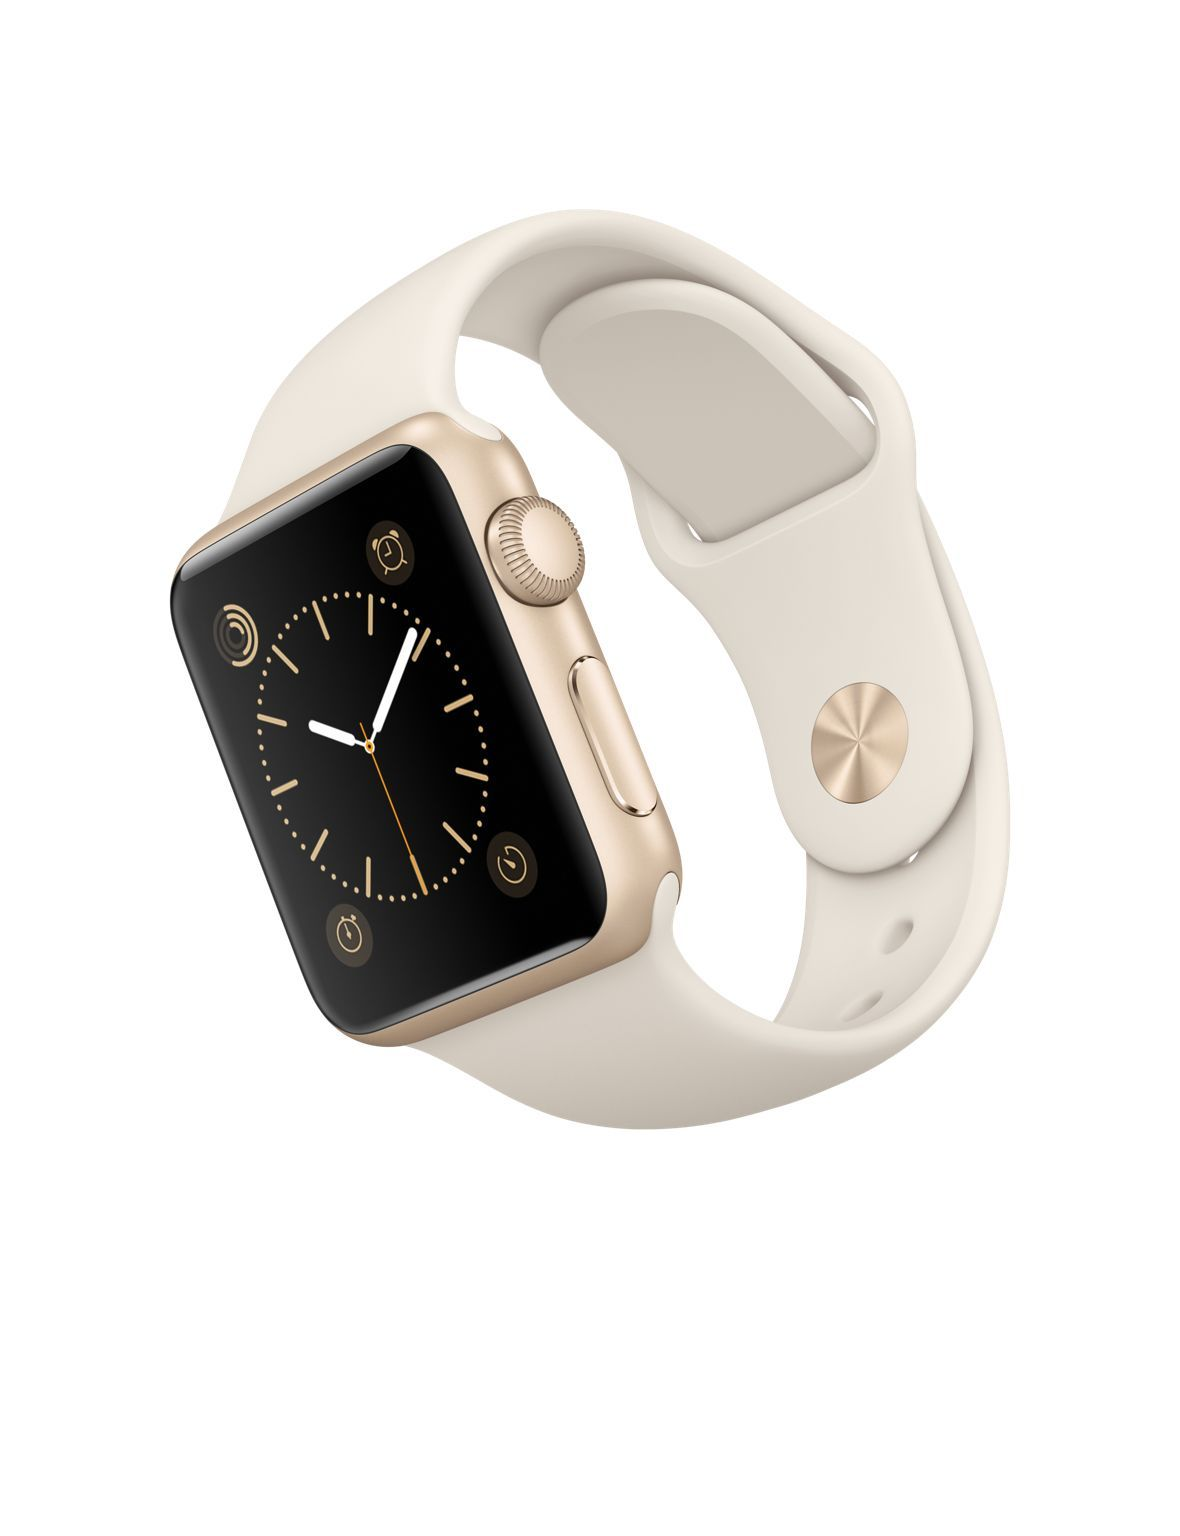 Apple Watch Sport is available in Silver, Space Gray, Rose